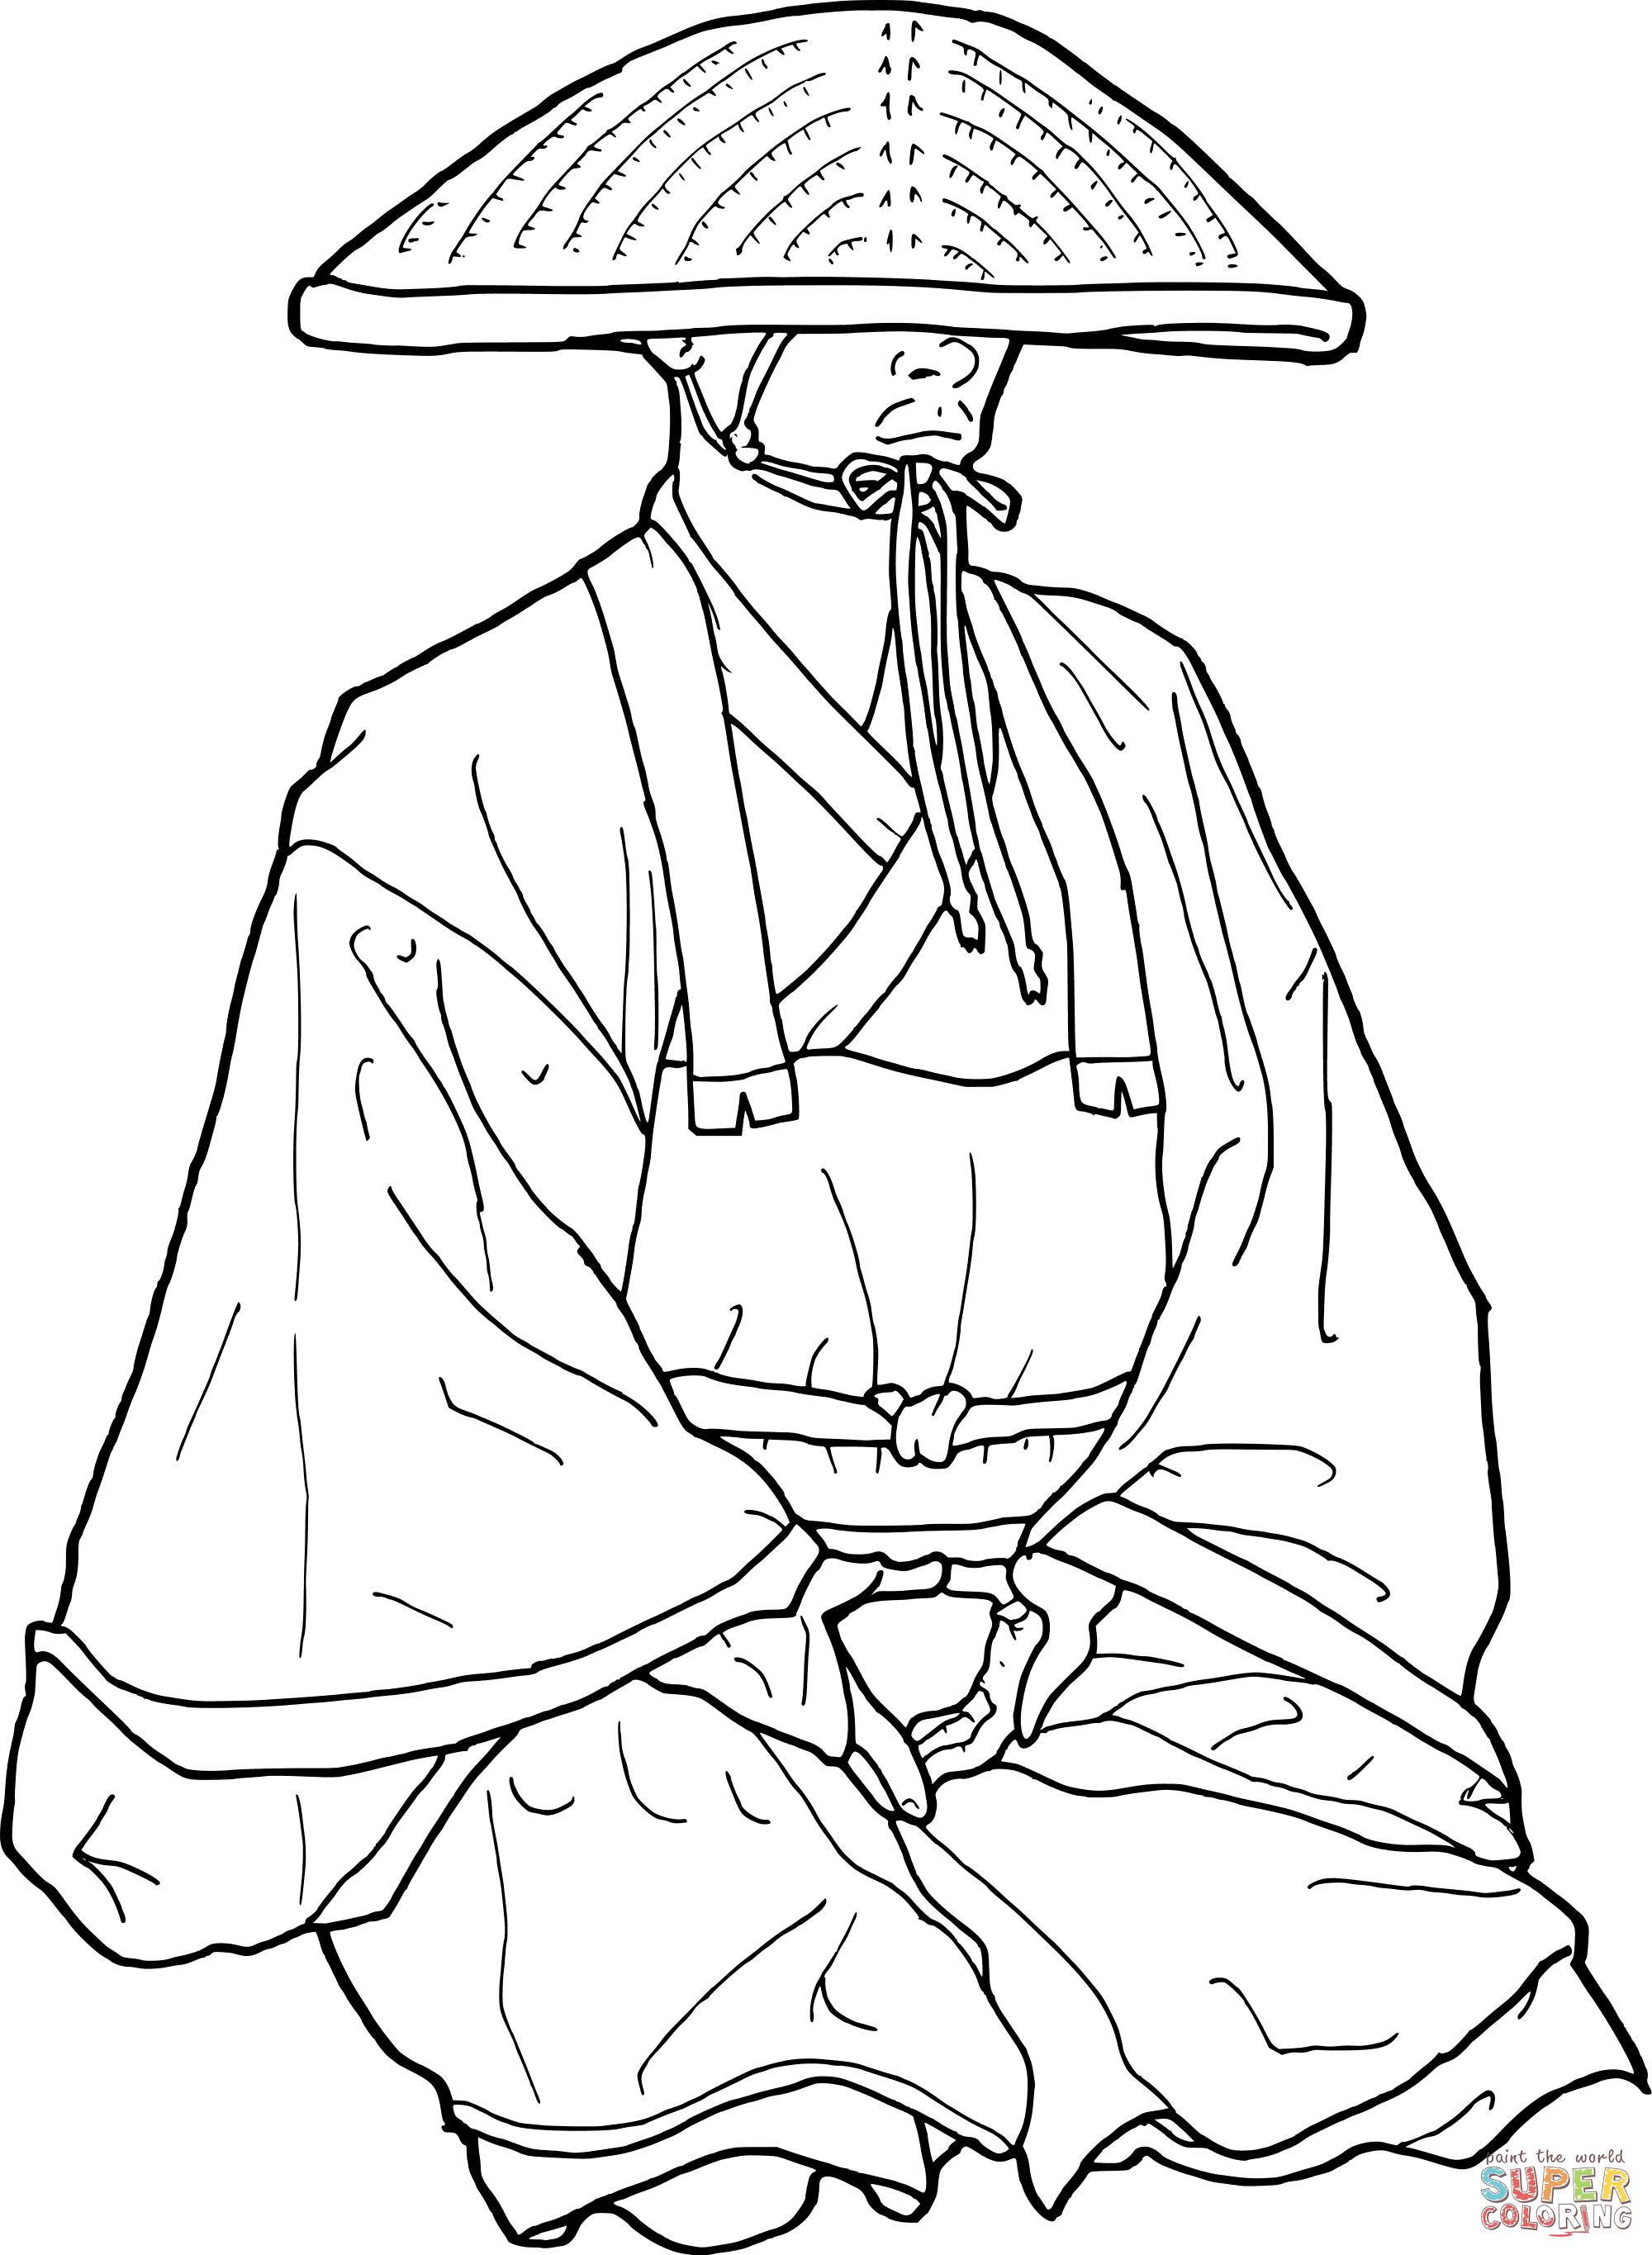 japanese coloring book pages japanese coloring download japanese coloring for free 2019 book japanese pages coloring